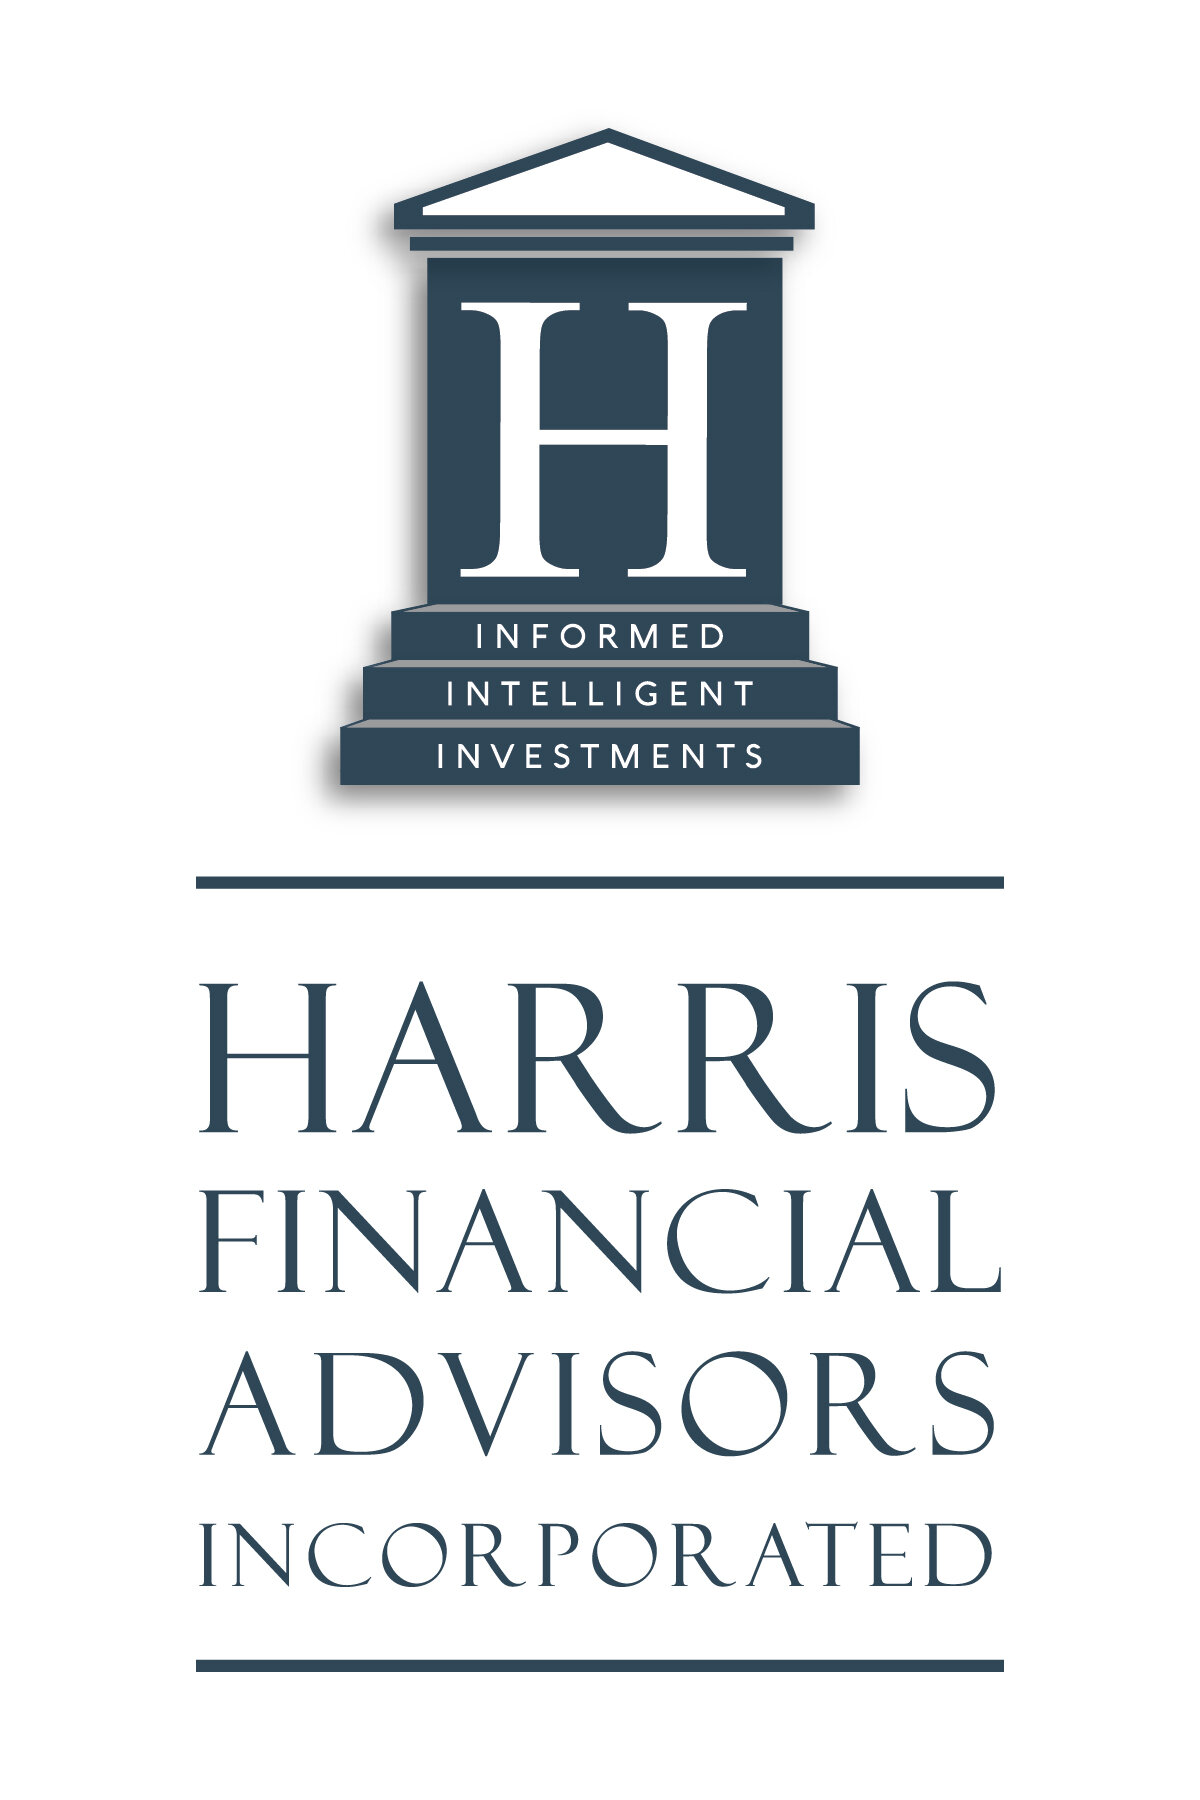 Logo_Harris Financial.jpg